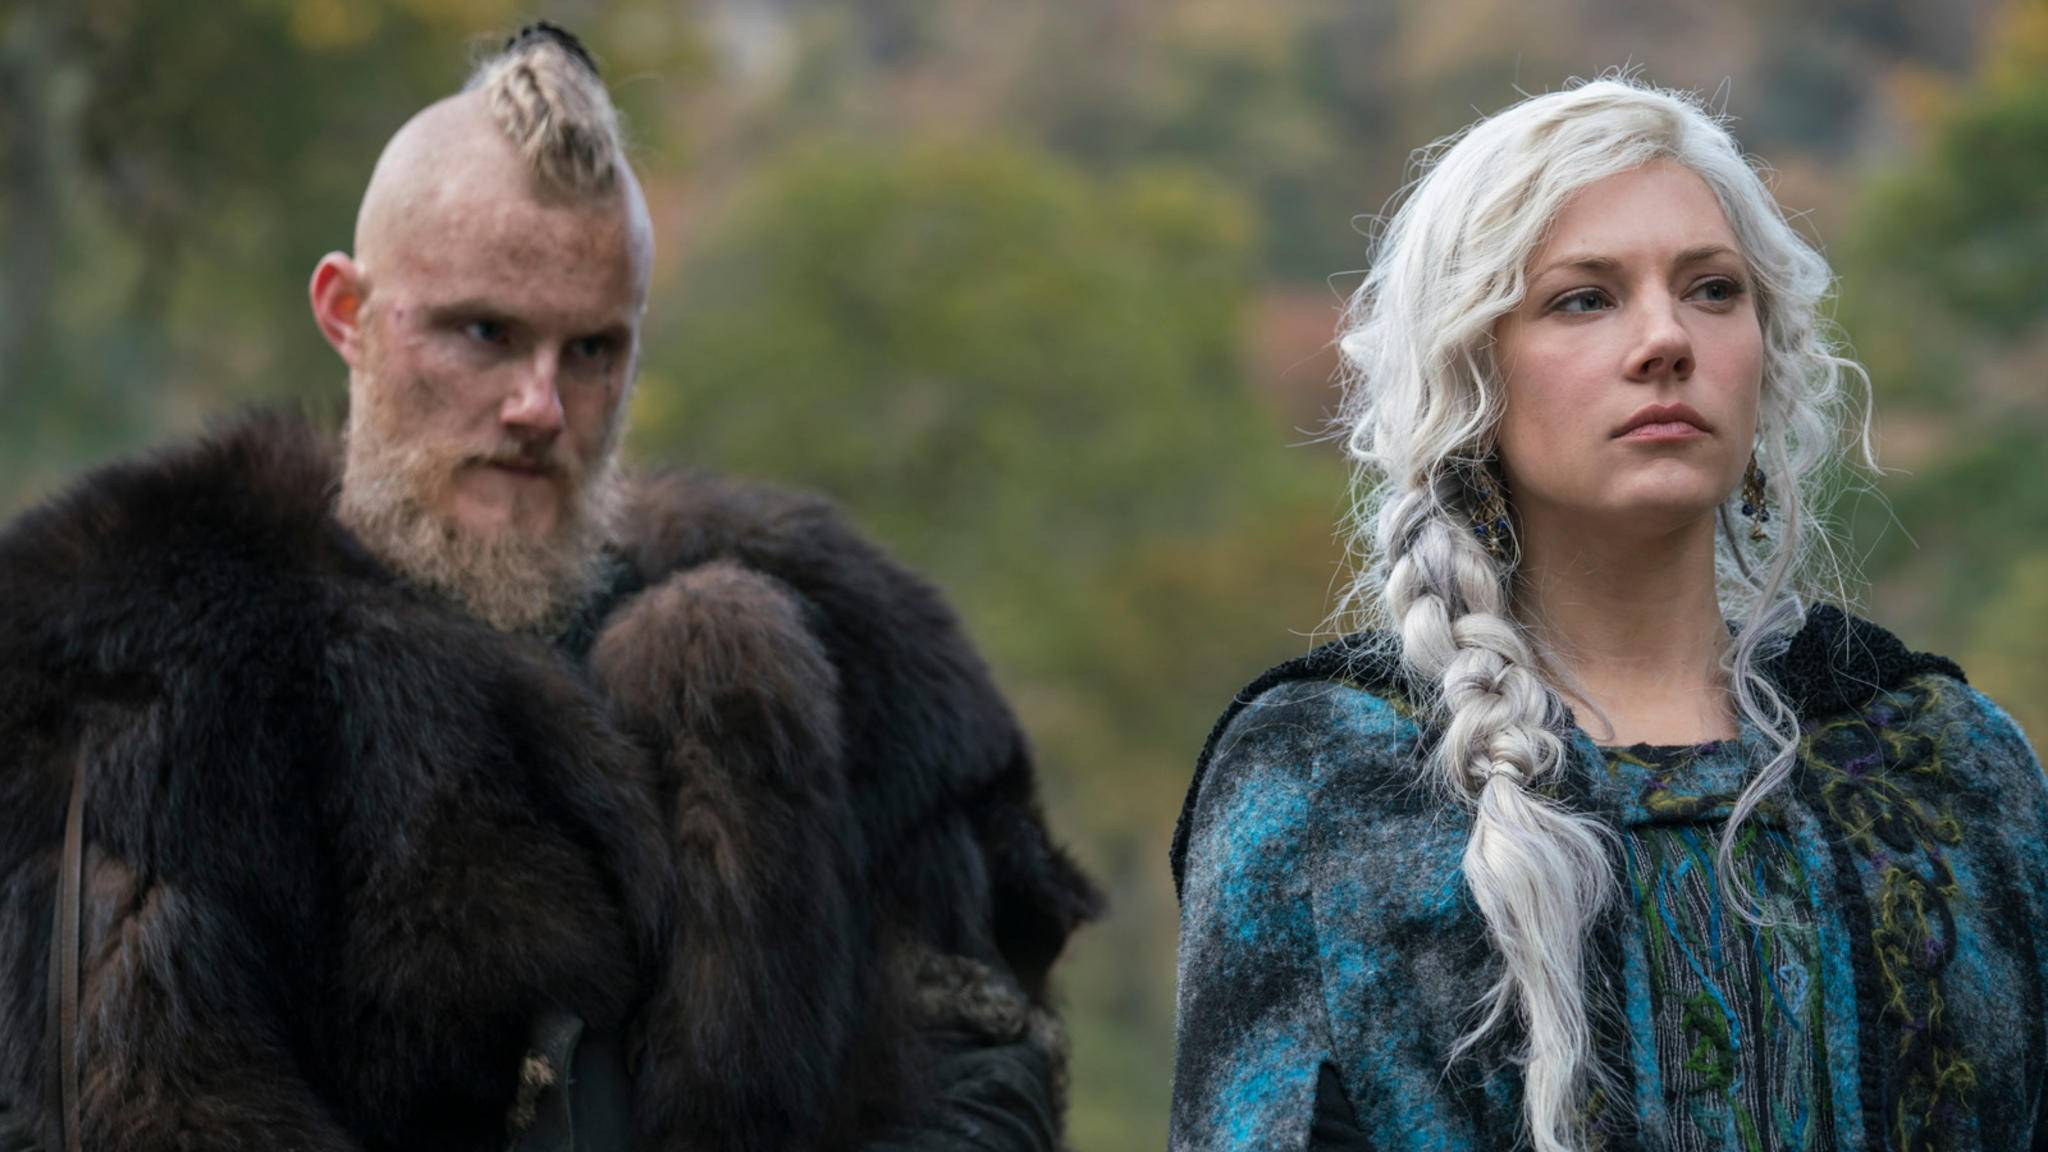 Vikings Bjorn und Lagertha in Staffel 5 Part 2